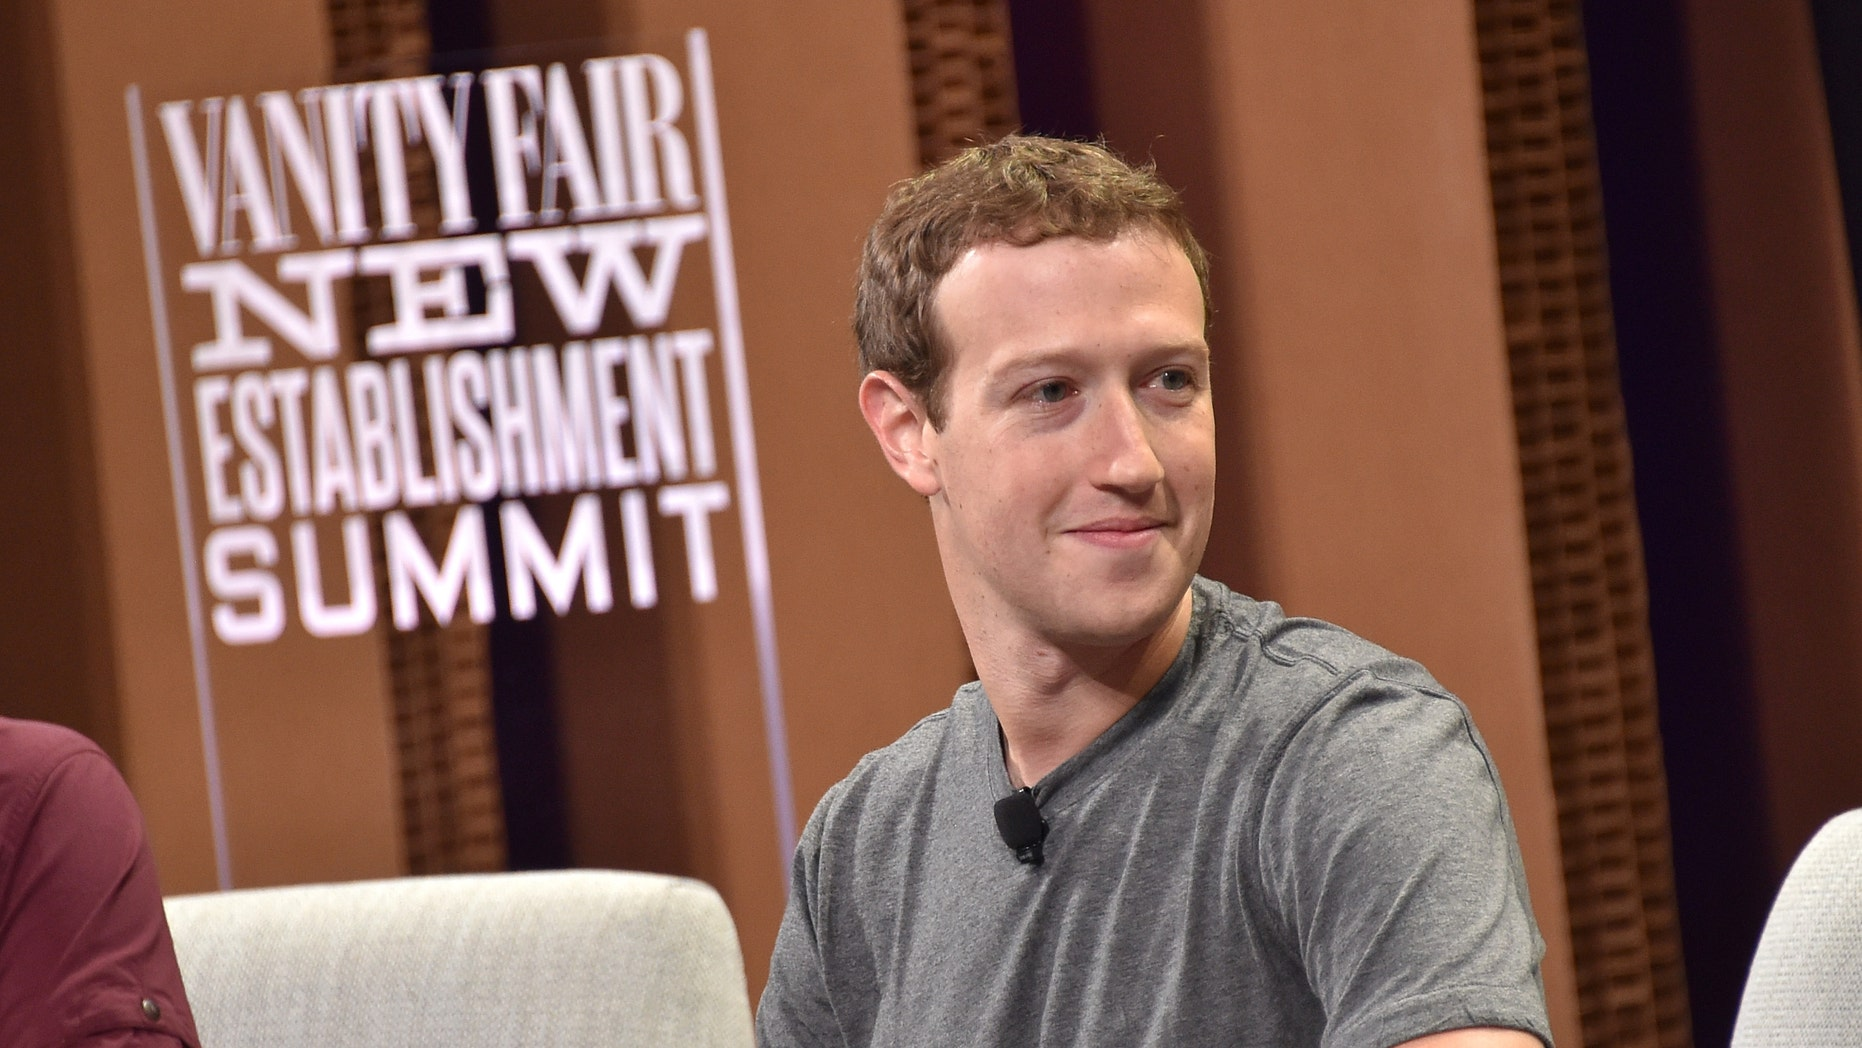 Mark Zuckerberg at Yerba Buena Center for the Arts on October 7, 2015 in San Francisco.